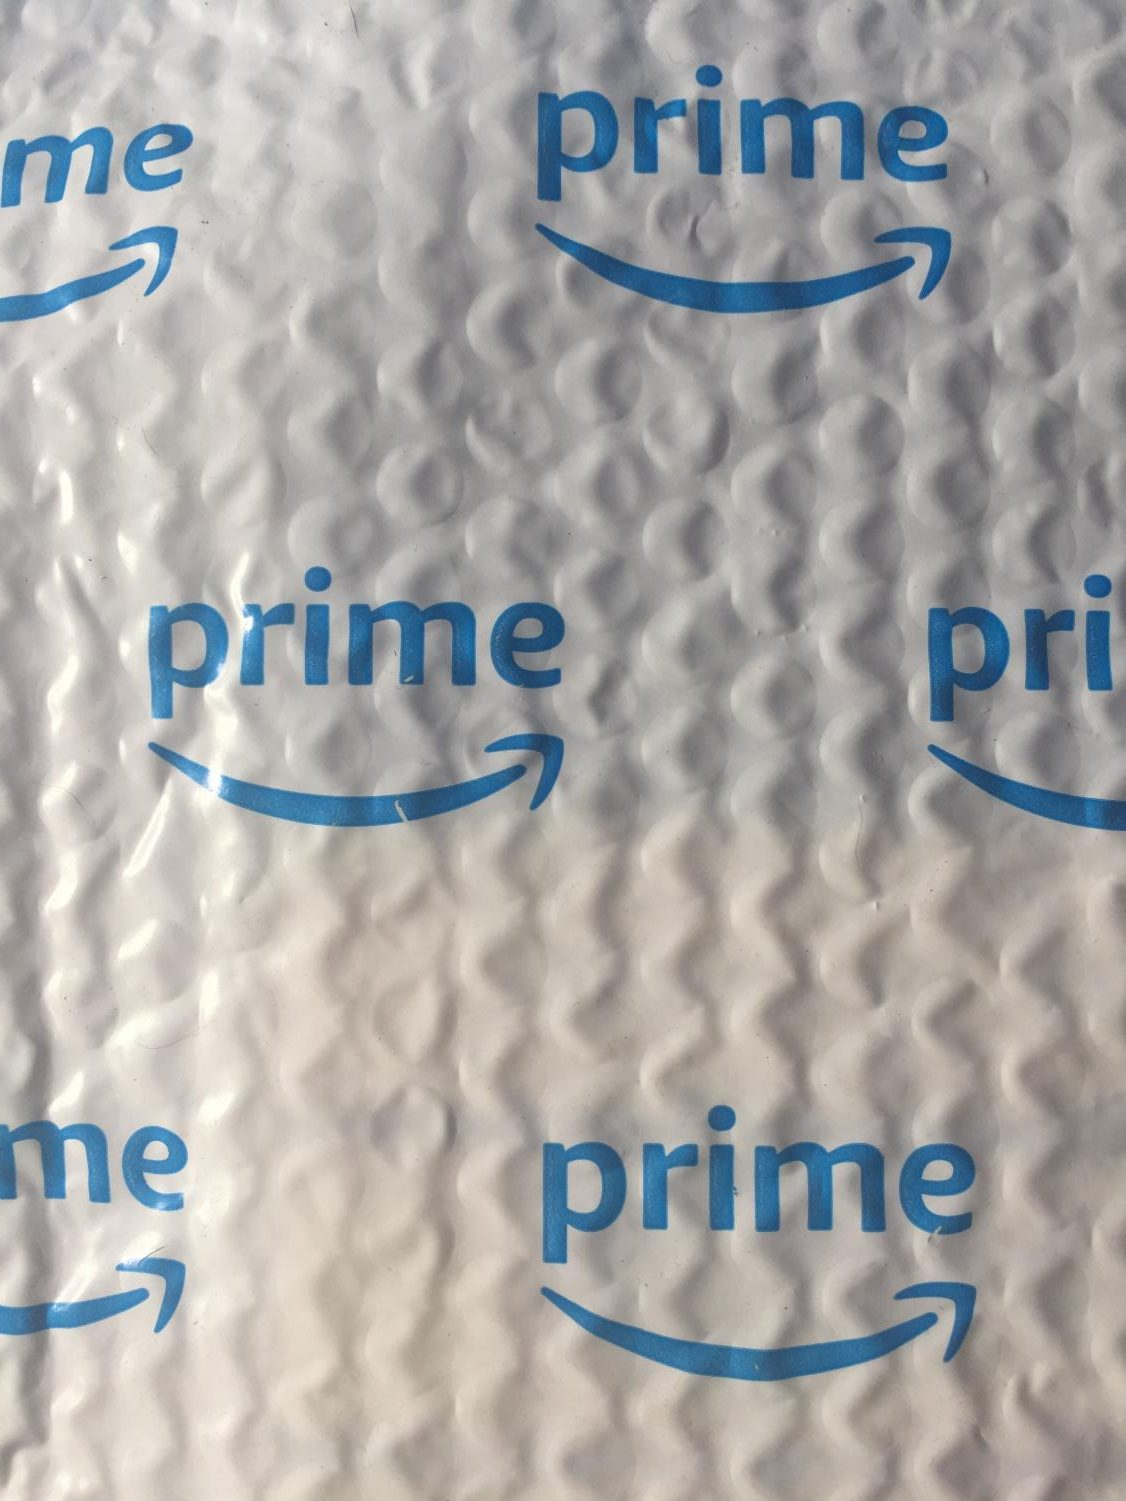 Amazon provides a variety of ways that they ship their product to maximize efficiency and suitability.